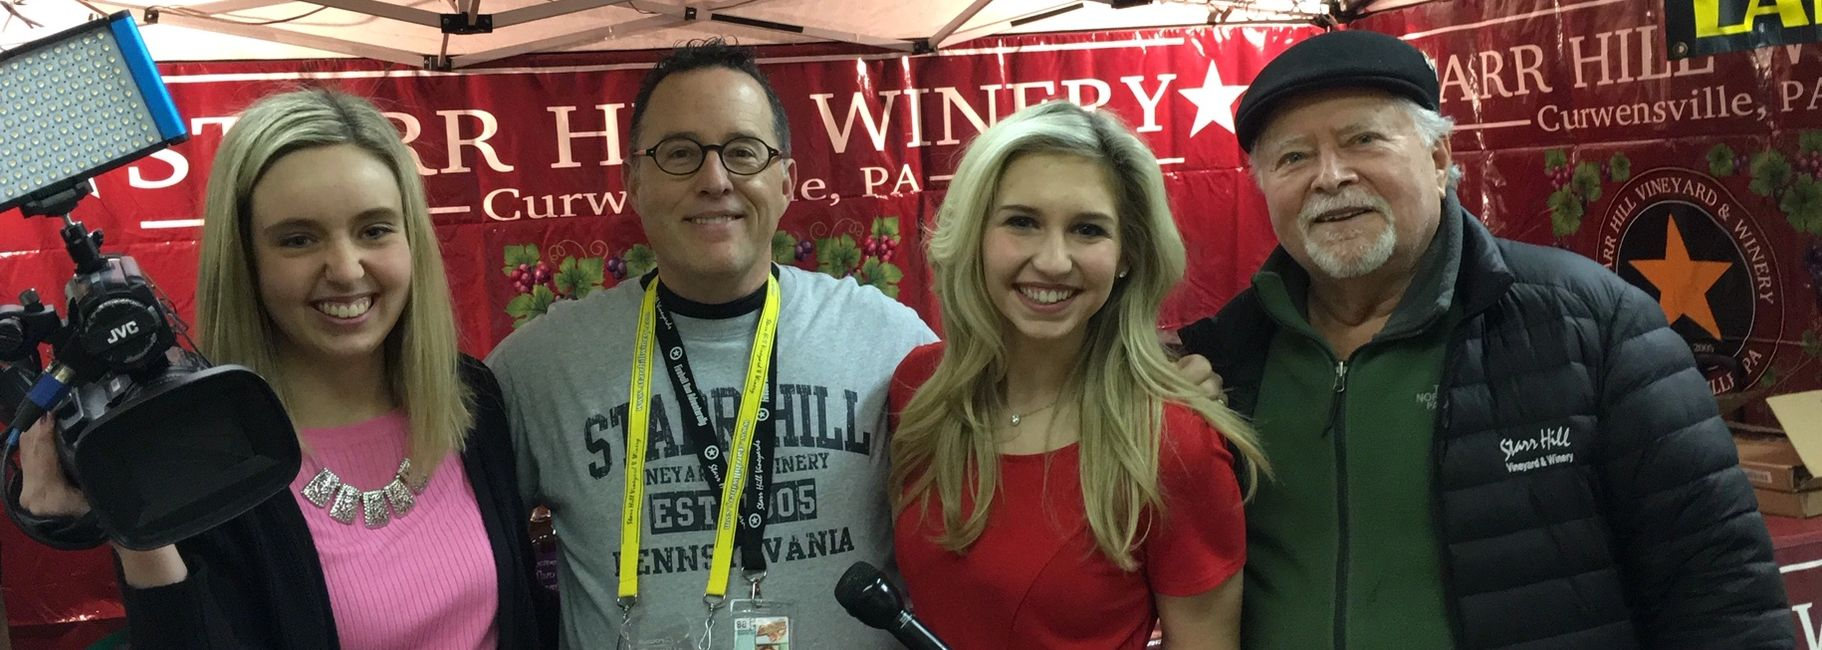 WTAJ tv 10 Allison Gens, Reporter, Kenn , Morgan Koziar  Producer with Central PA LIVE and Ken Starr